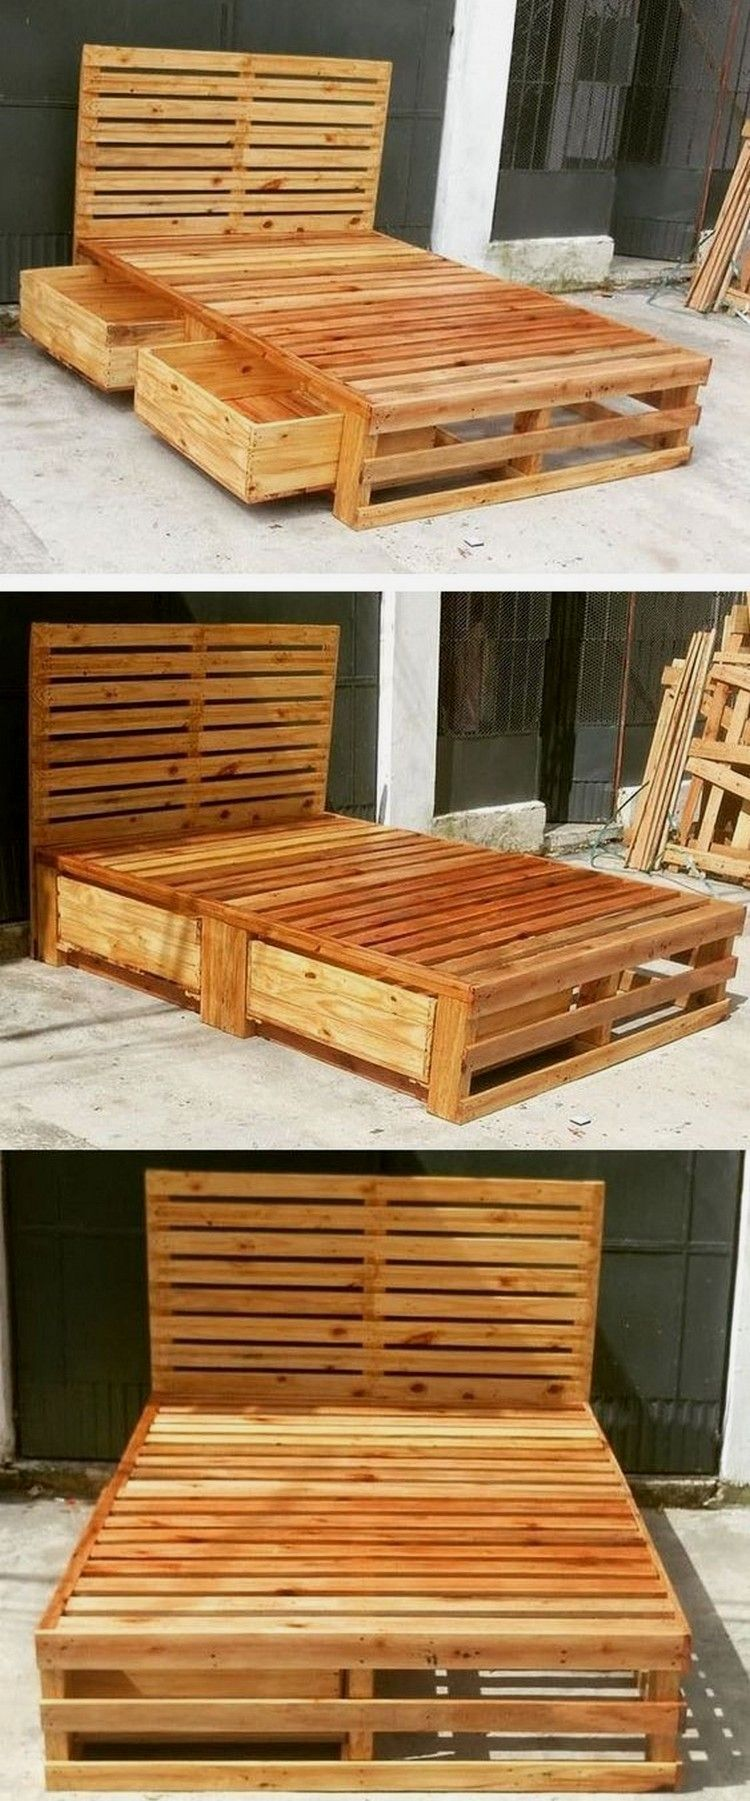 How to make a DIY Pallet Bed? palletideas, 2020